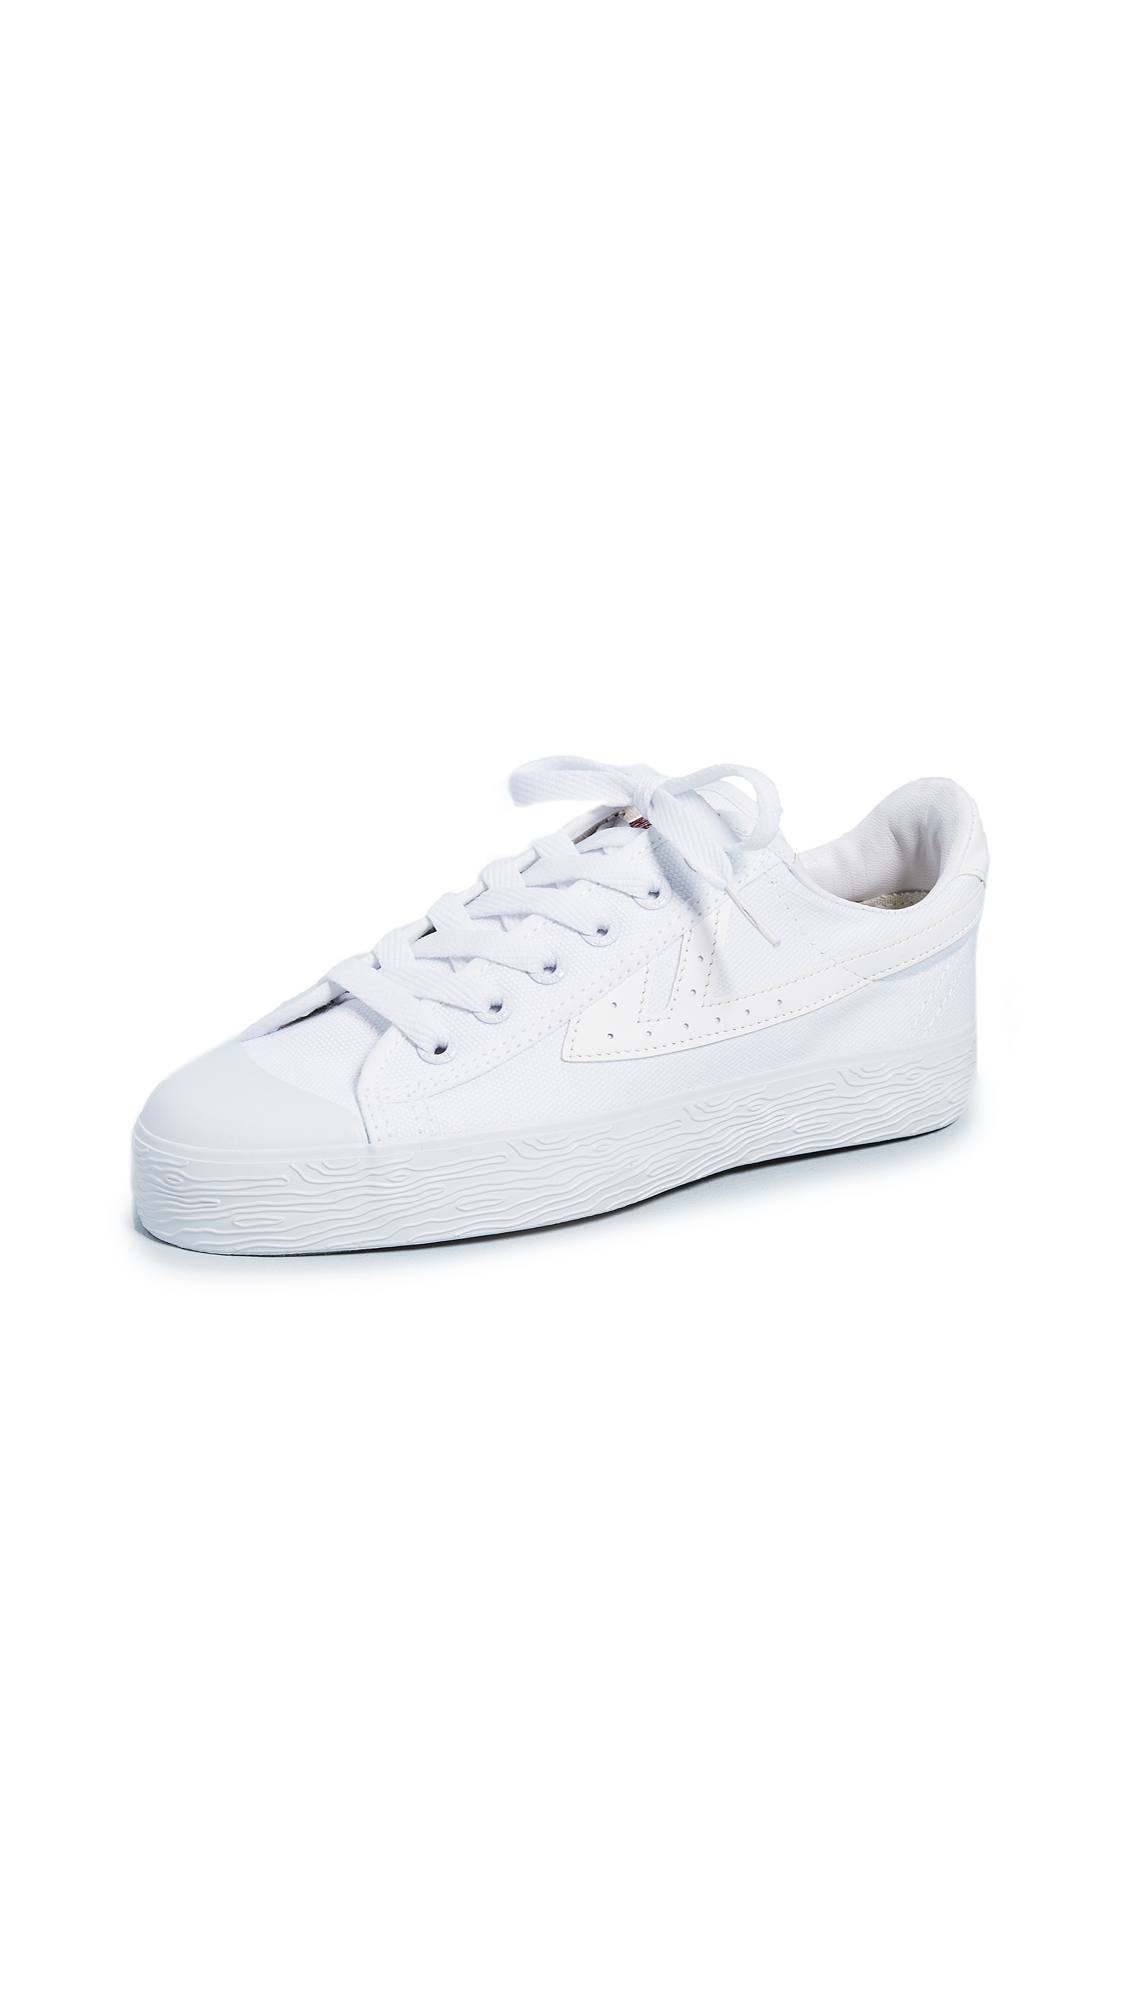 WOS33 Classic Sneakers In White/White